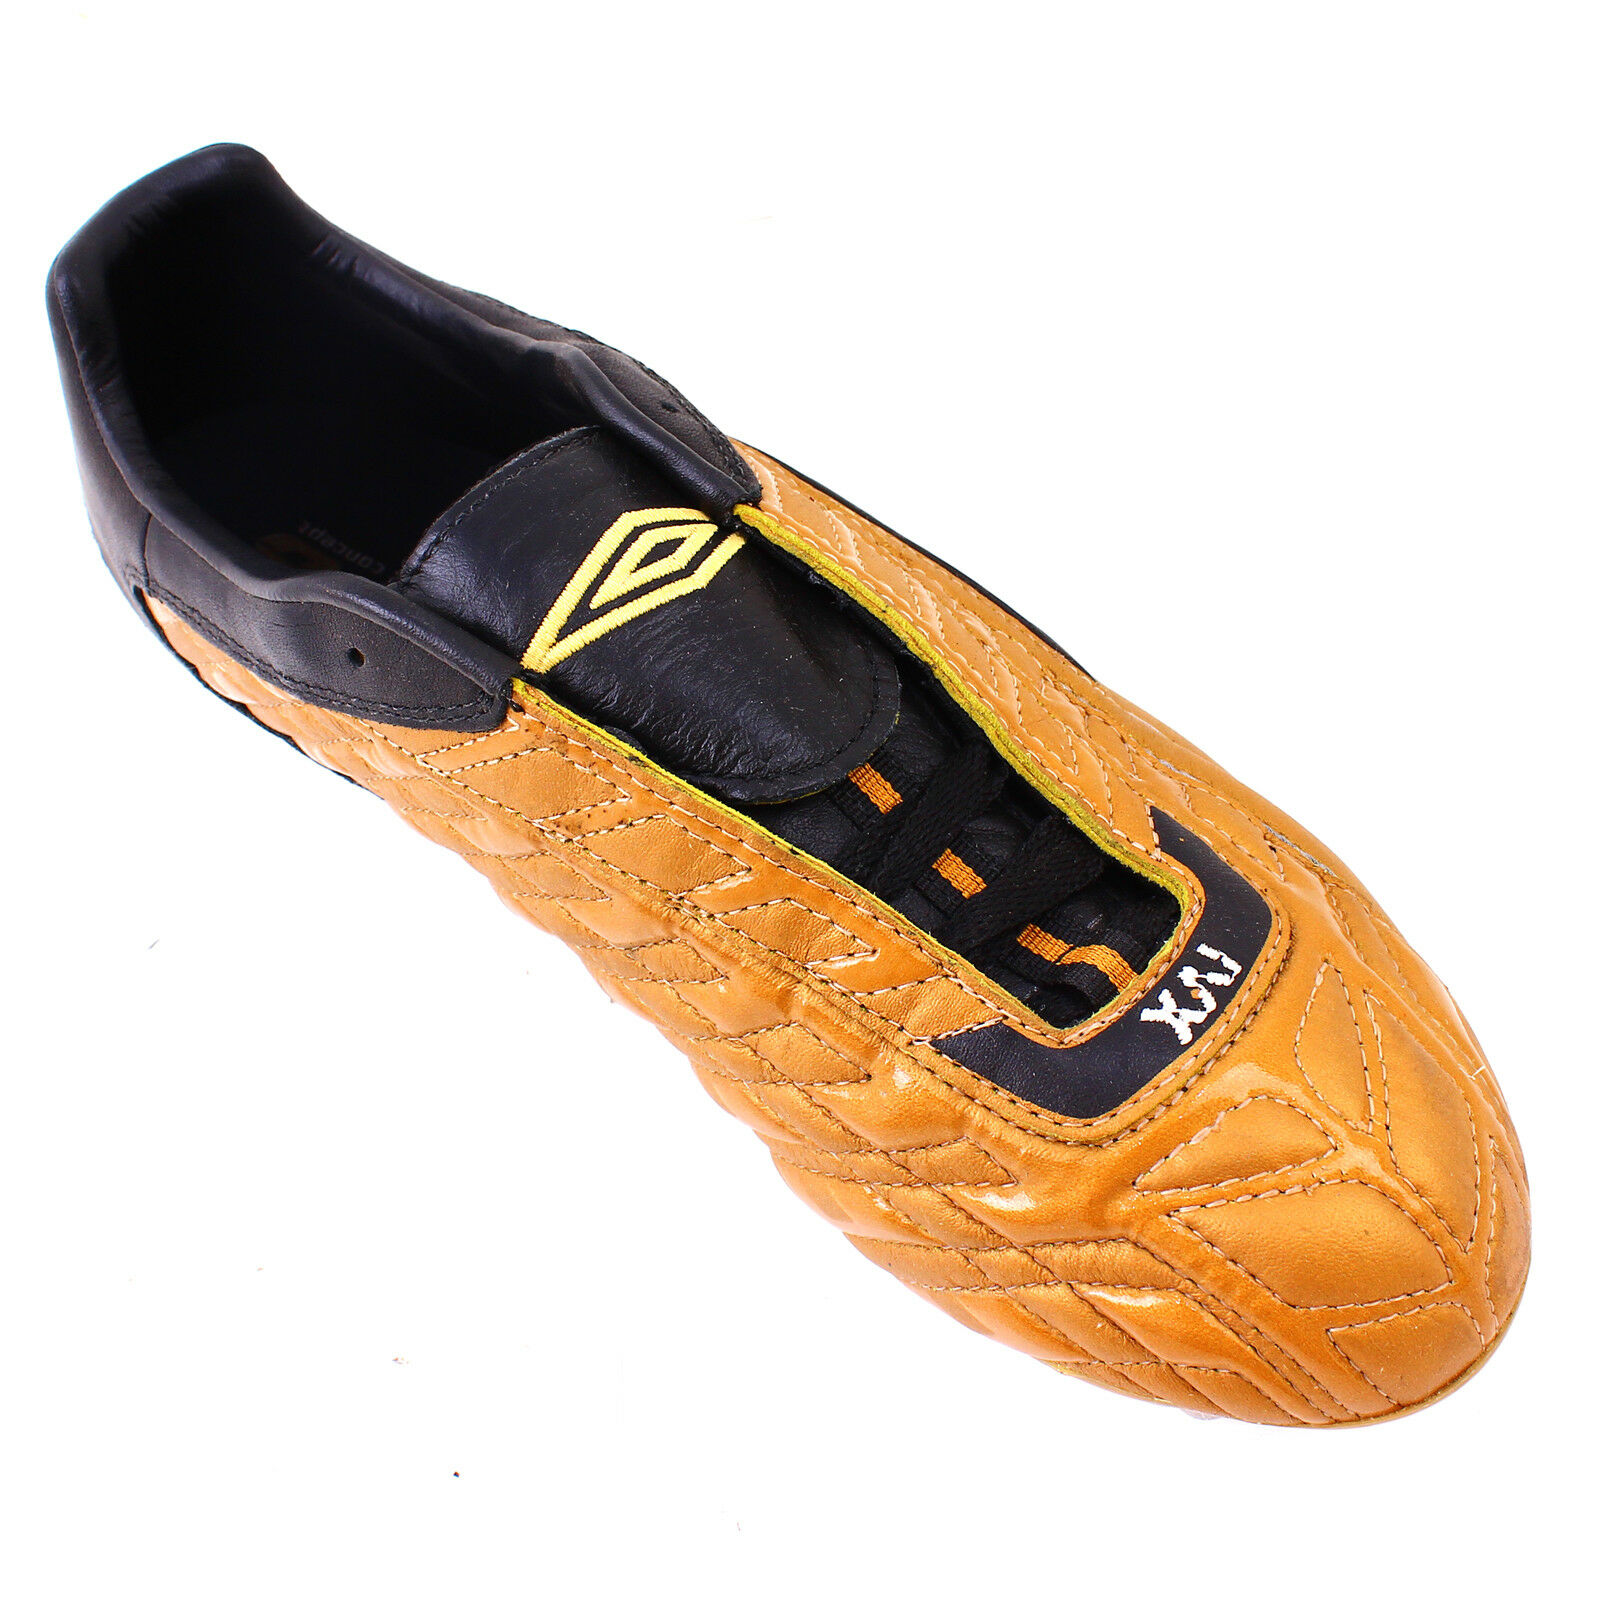 Umbro Chaussures De Football Hommes Sport XRI 2 KTK clous taille UK 11 Noir & Orange